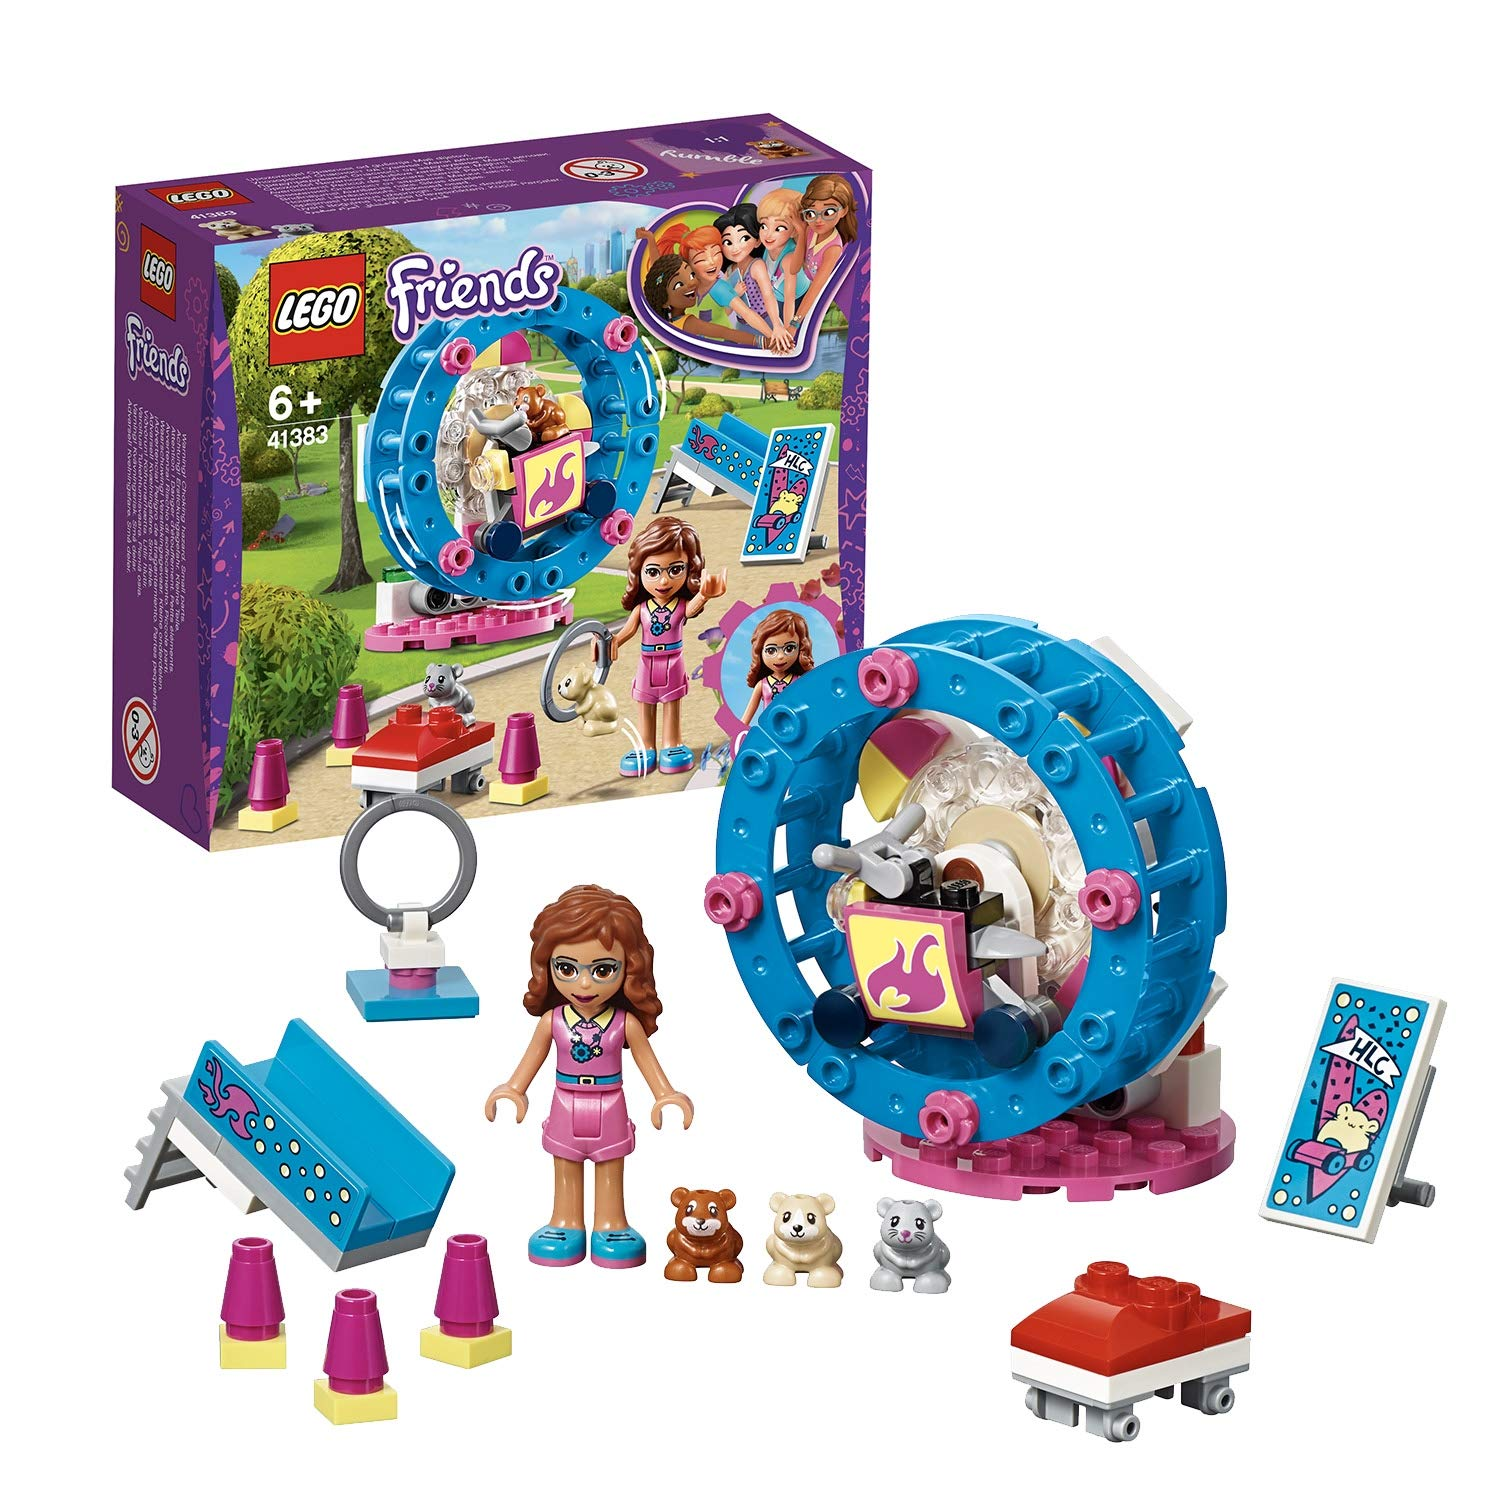 LEGO Friends Olivia's Hamster Playground Building Set